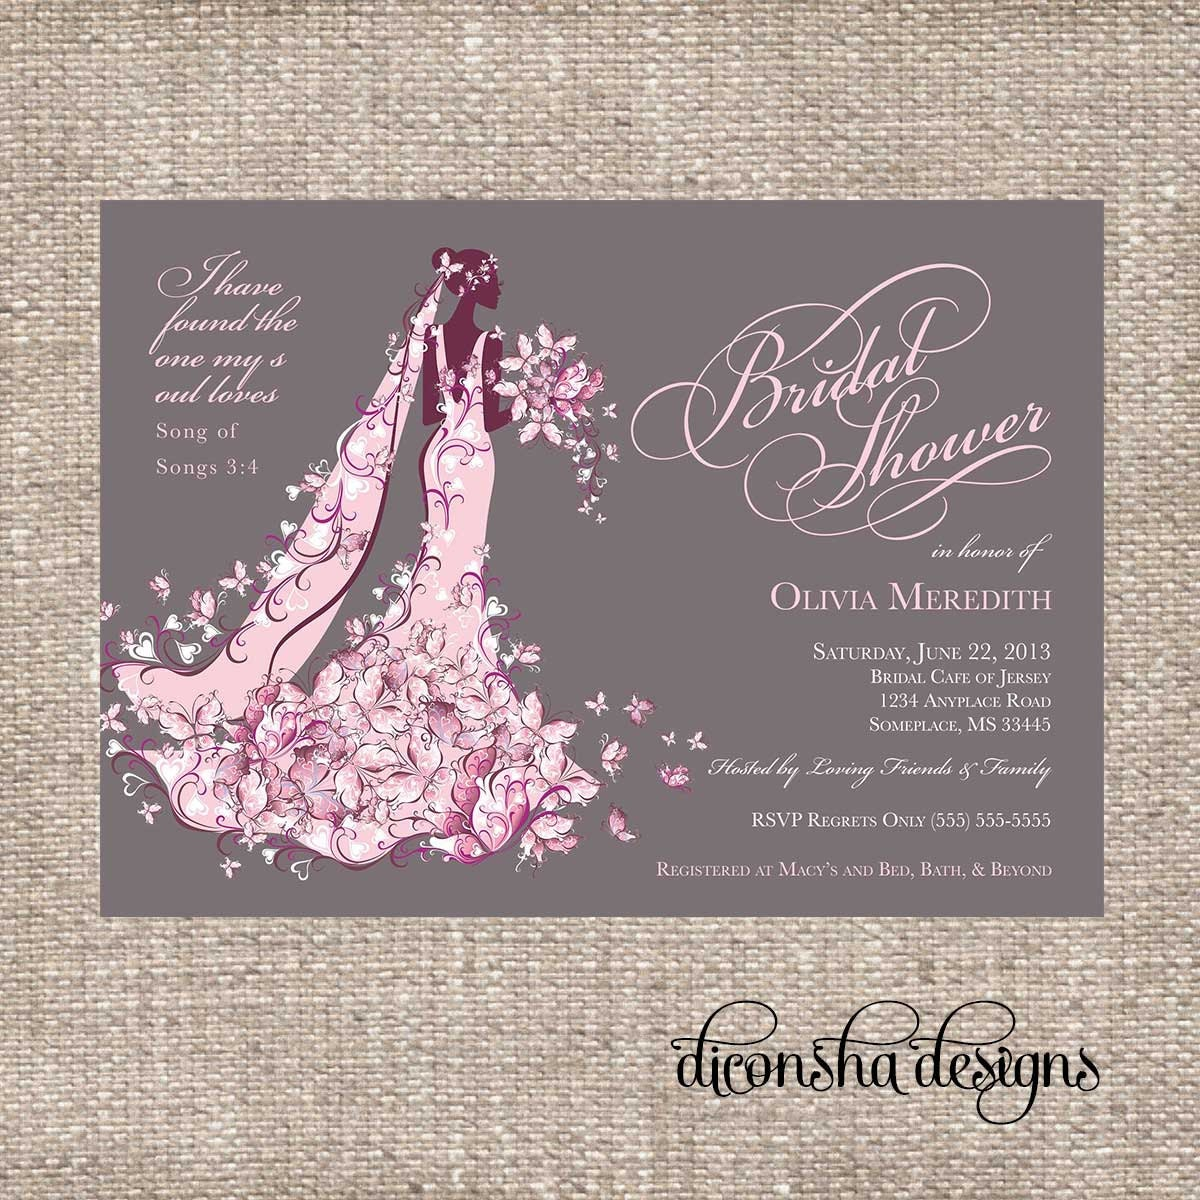 Elegant Christian Bridal Shower Invitation By DiconshaDesigns